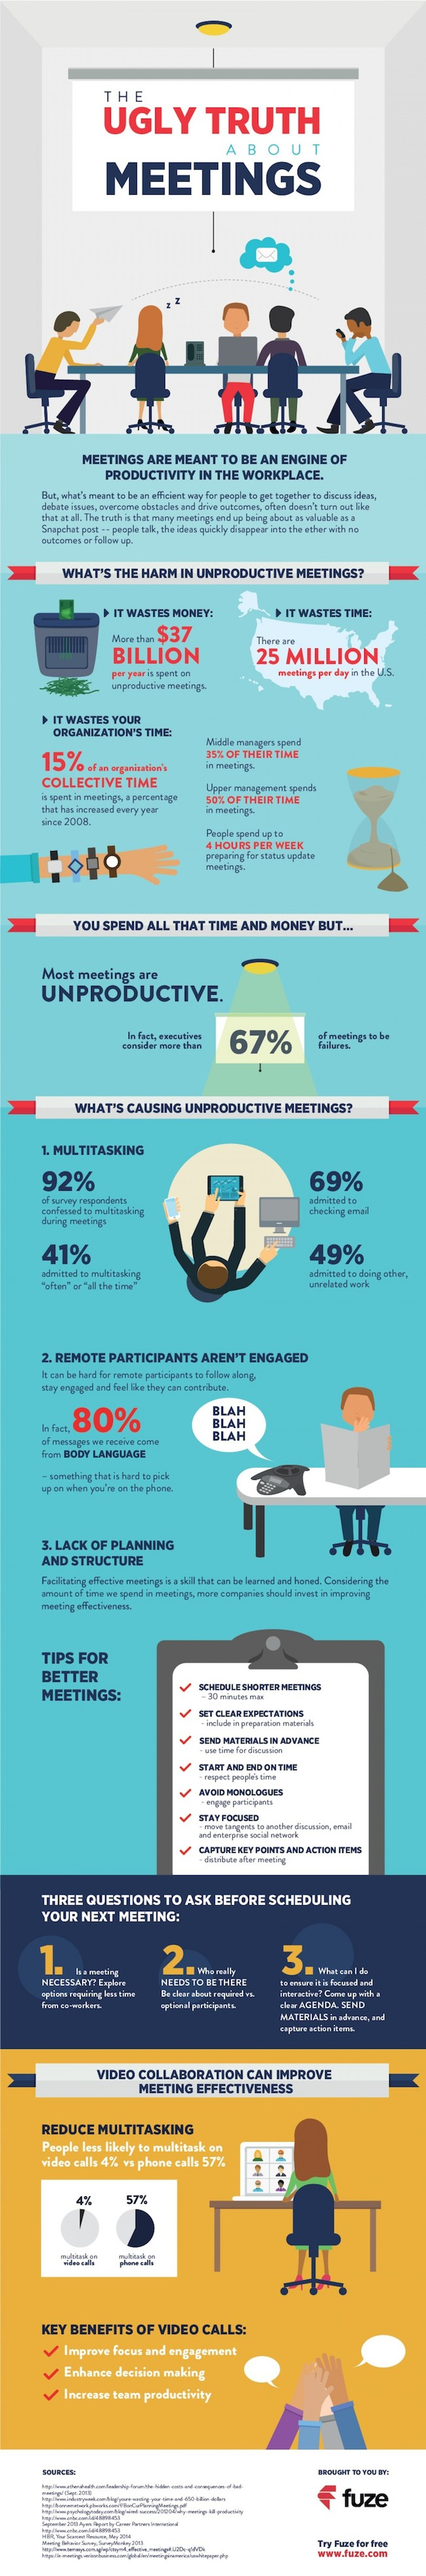 The Ugly Truth About Meetings: Why They Are Such a Time Suck [Infographic]